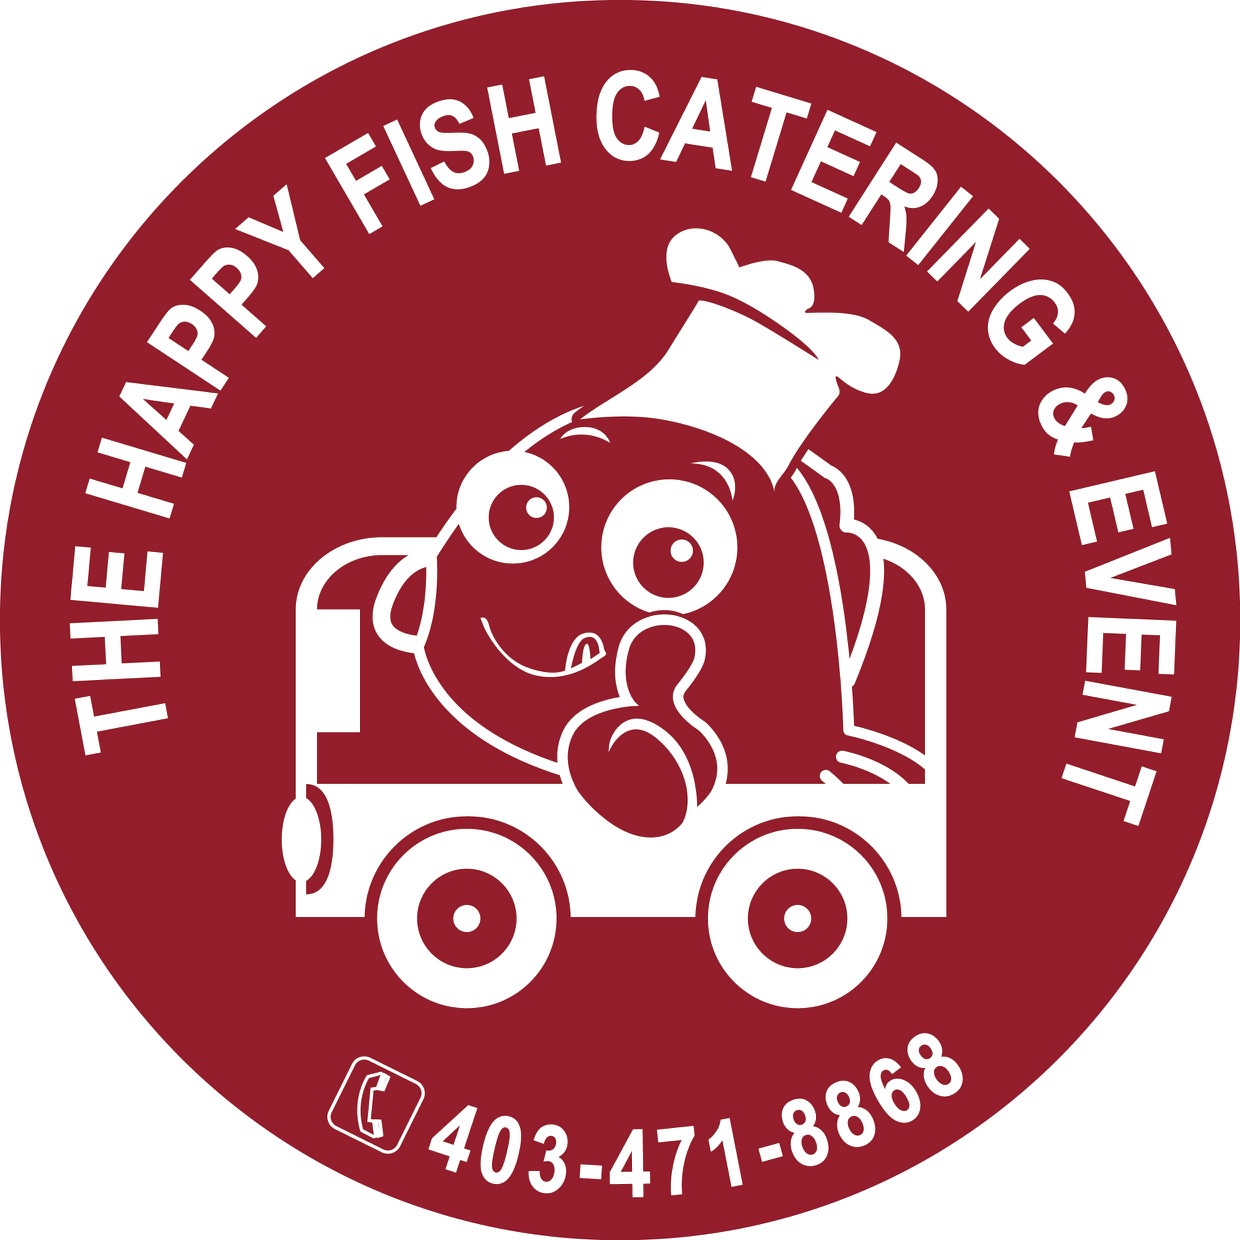 LOGO-HAPPY FISH CATERING - new.jpg